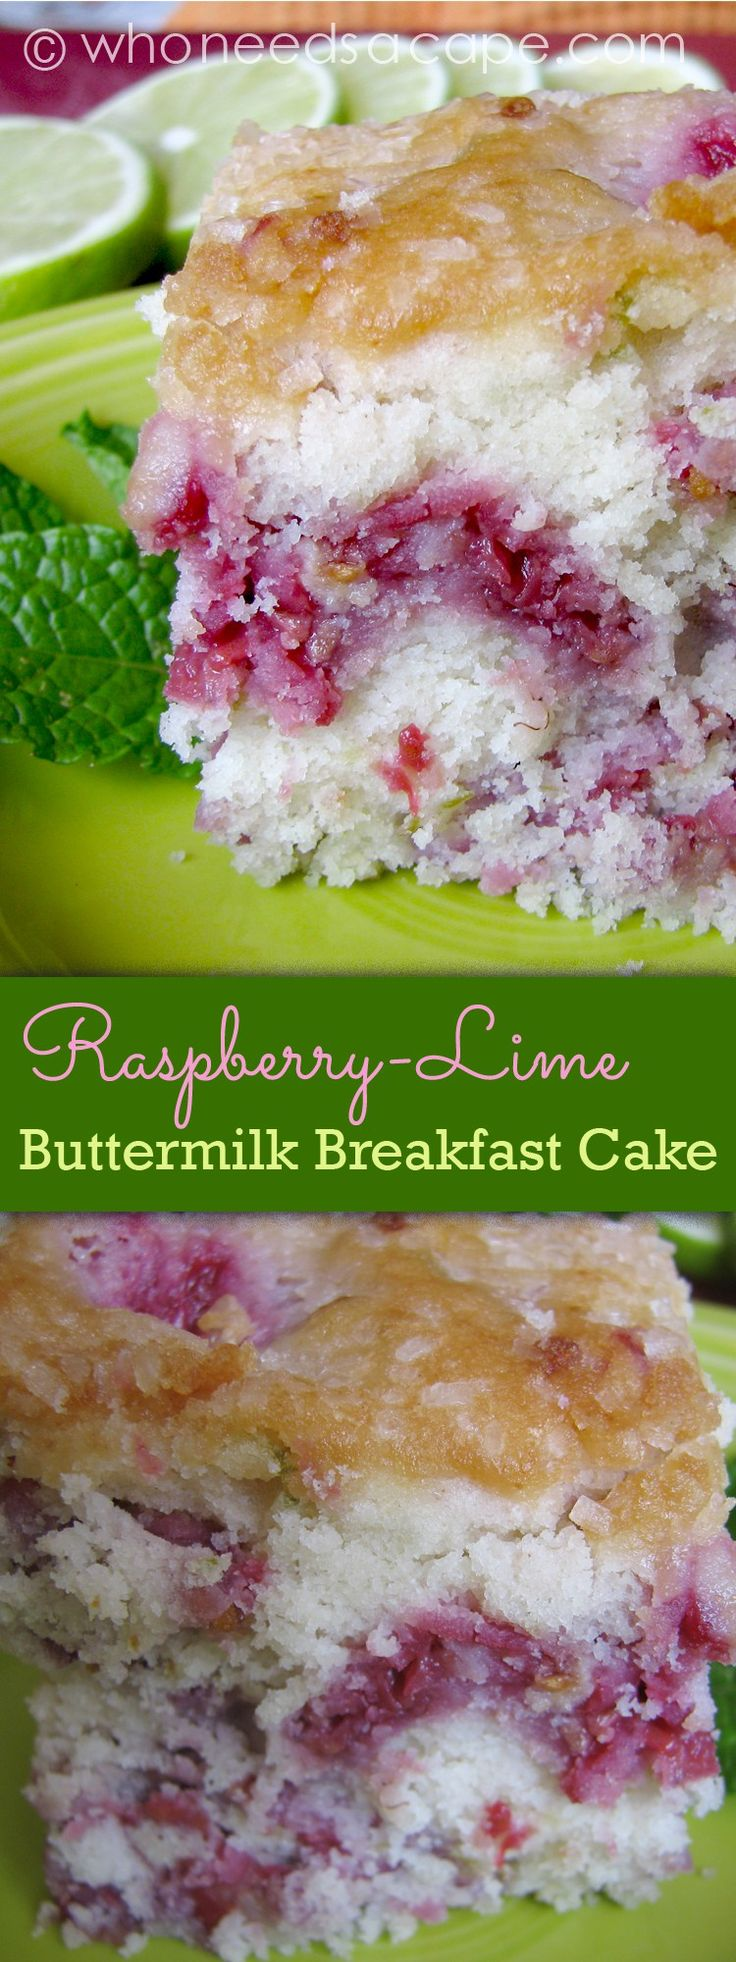 Raspberry-Lime Buttermilk Breakfast Cake perfect for every brunch, shower or just a sunday morning!